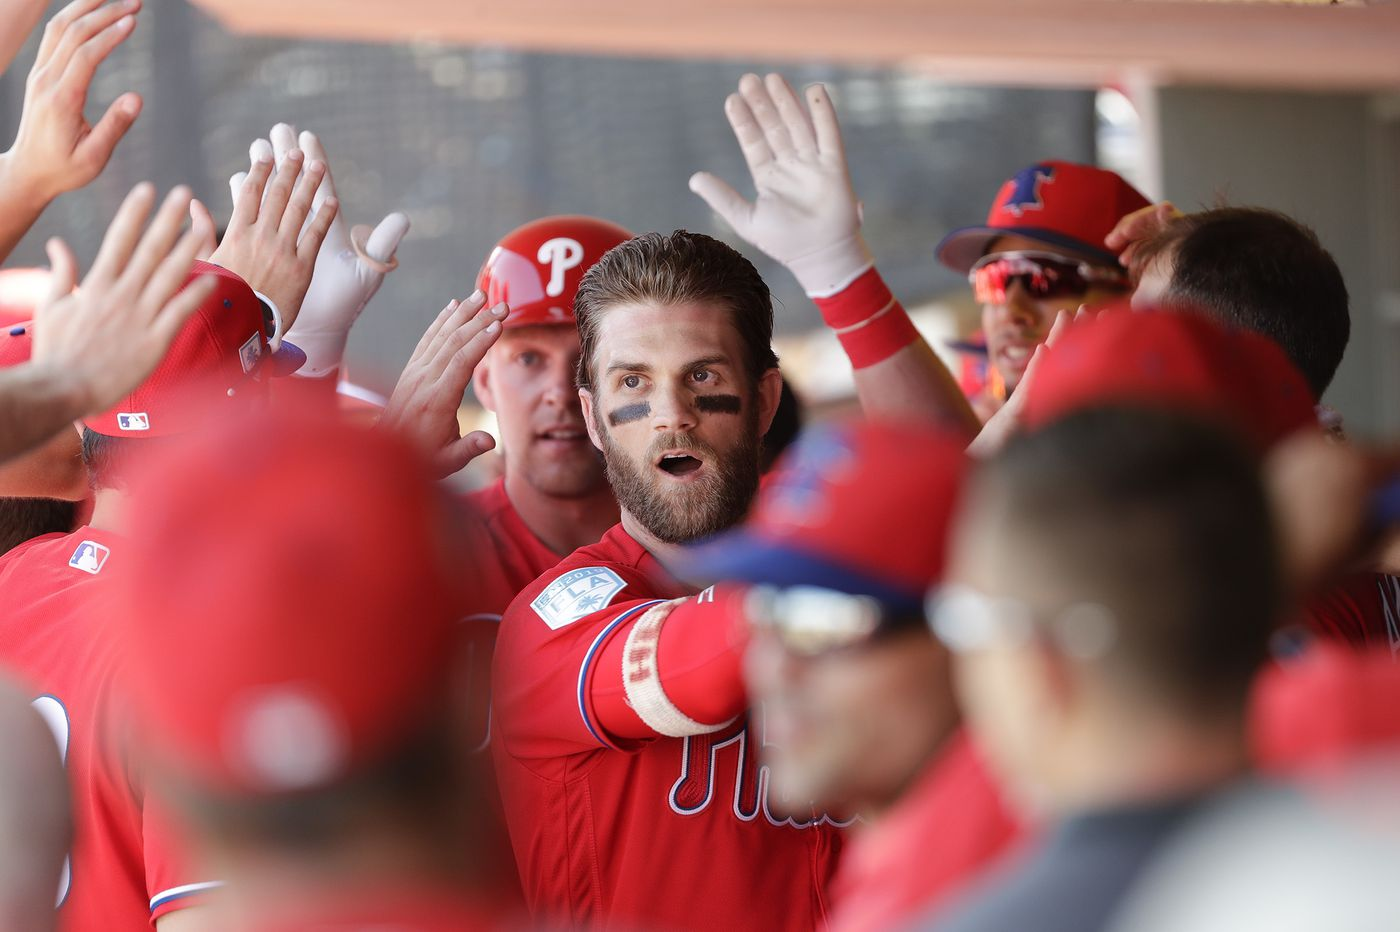 Phillies fans cheer for first glimpse of Bryce Harper in spring-training debut ... and he walks twice